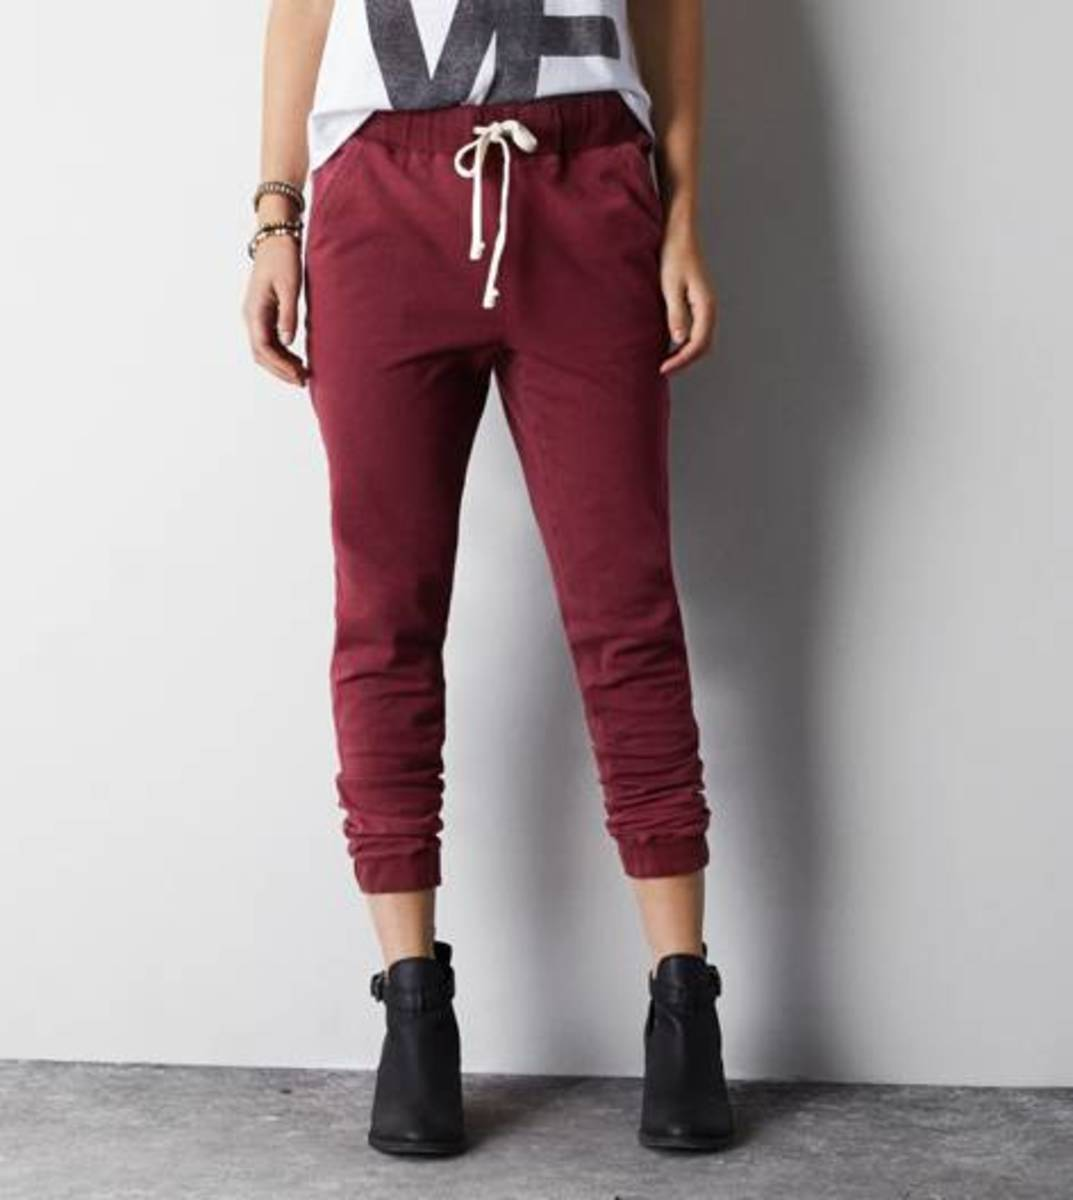 Maroon jogger pants. Love this color for fall.